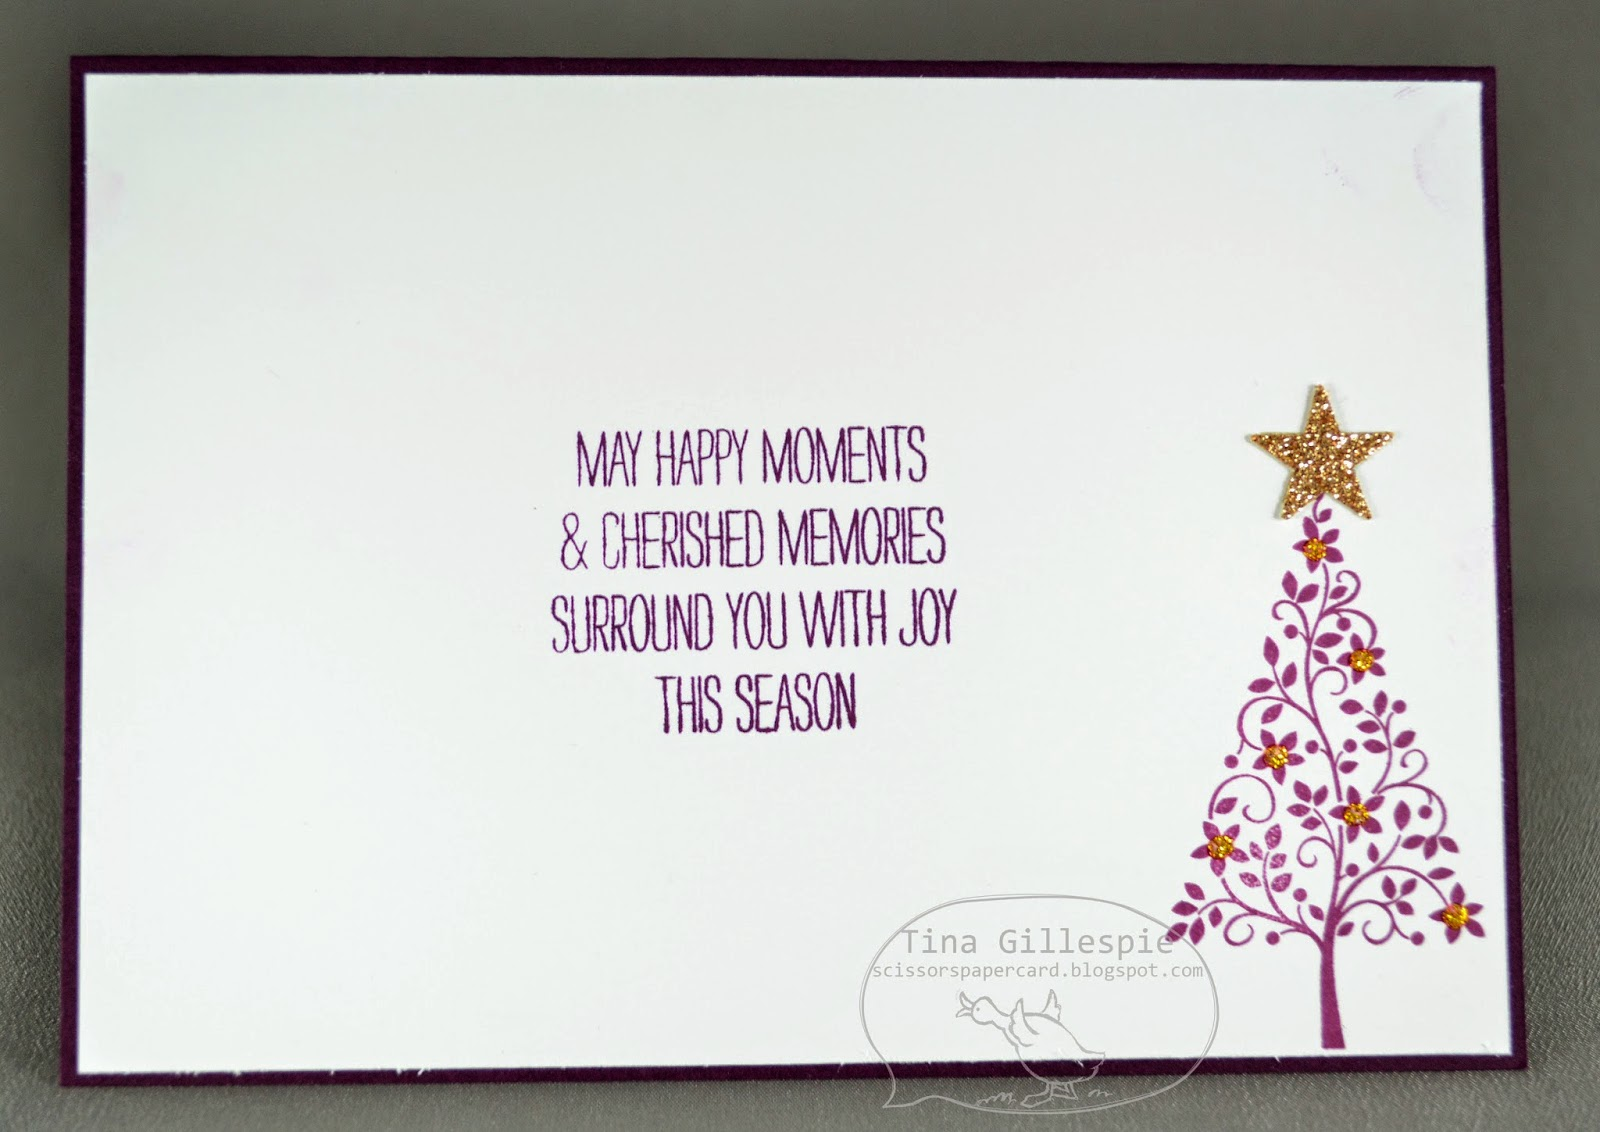 Scissors Paper Card: Happy Wonderful Christmas